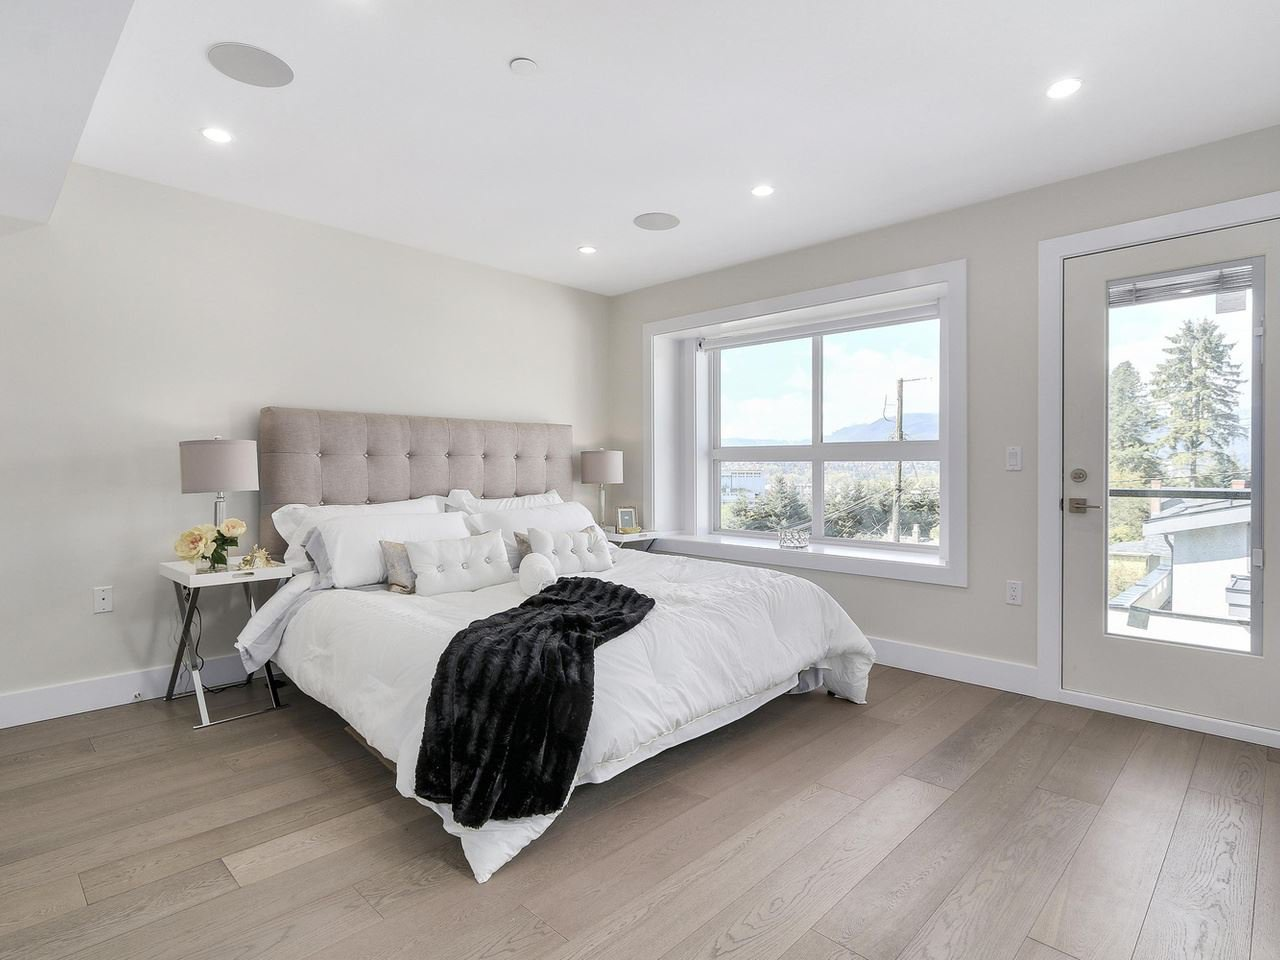 Photo 12: Photos: 3539 ETON STREET in Vancouver: Hastings East House for sale (Vancouver East)  : MLS®# R2159493